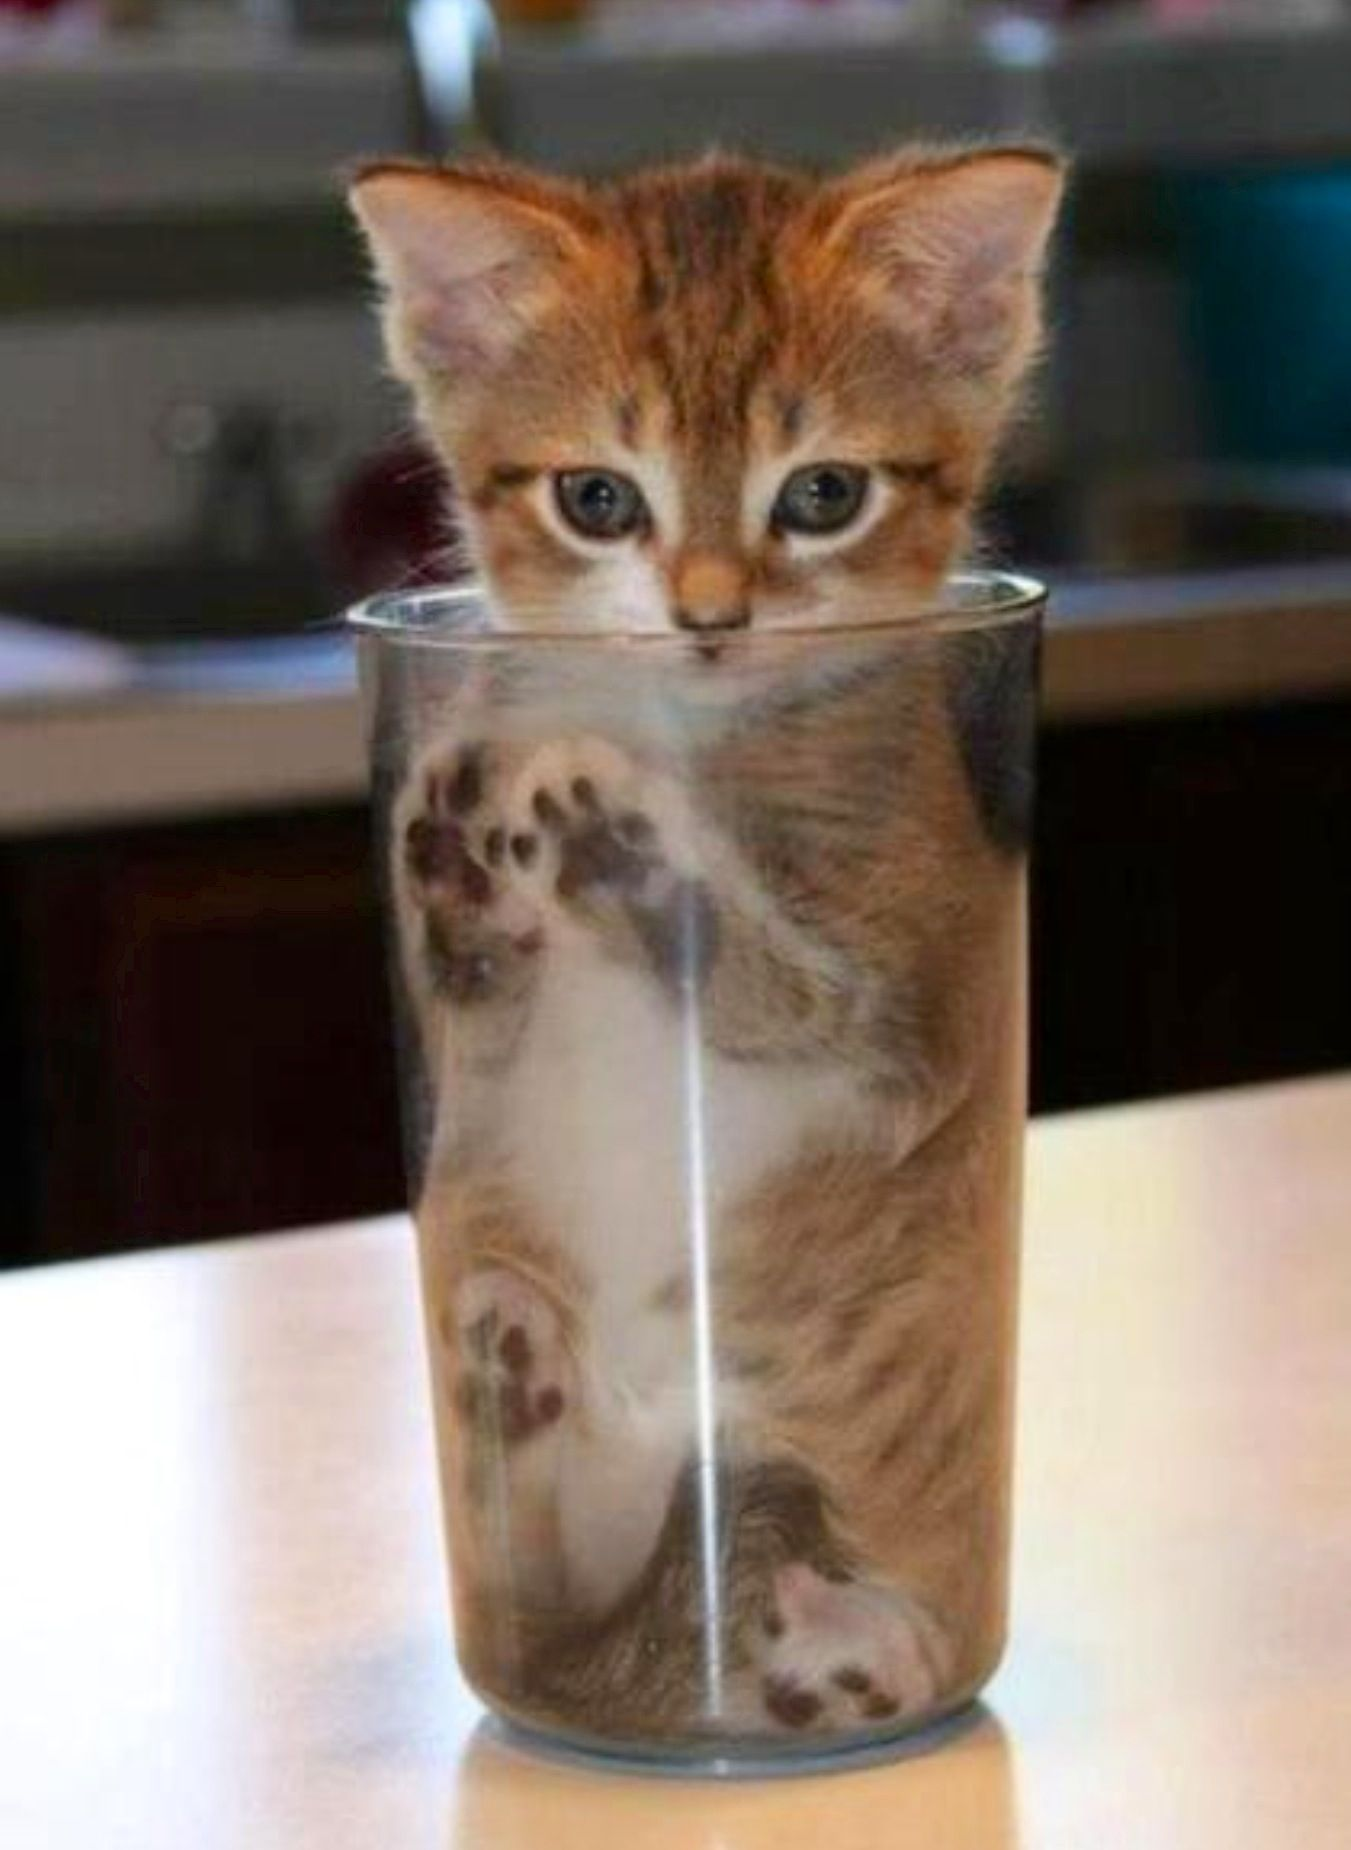 They Call Me A Long Drink Of Water Cute Animals Cute Cats Cute Cats And Kittens